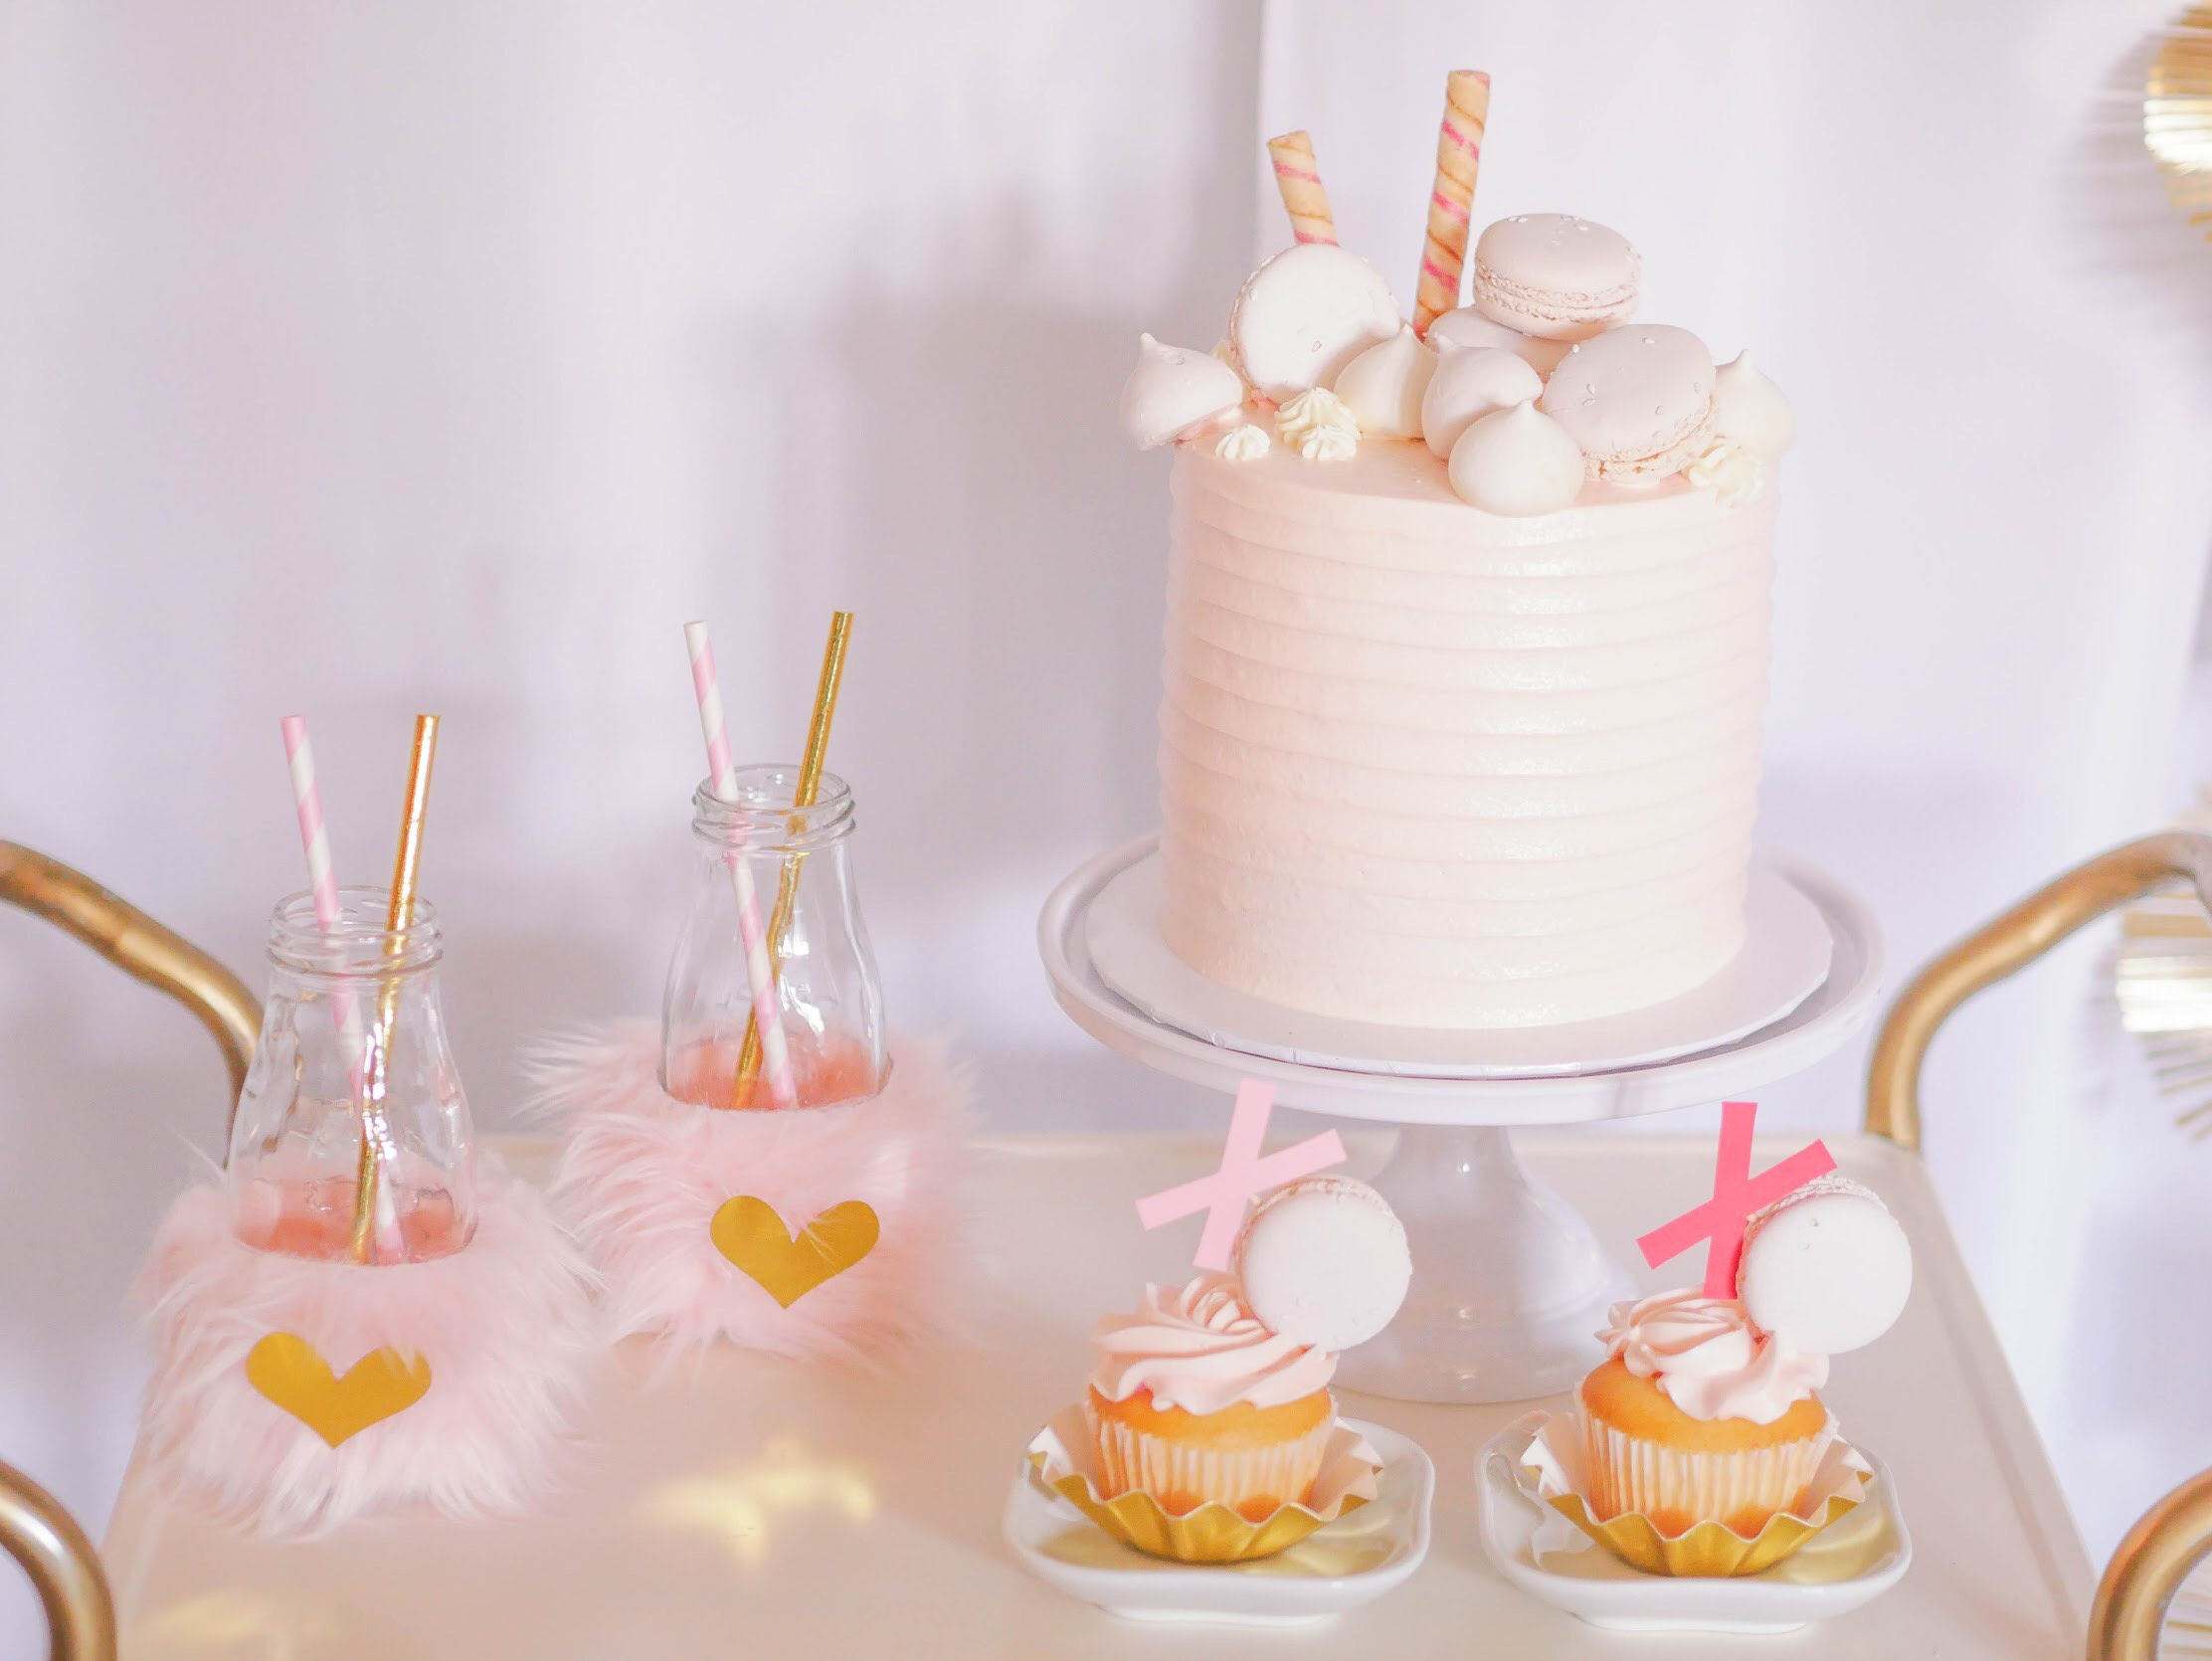 A Cotton candy colored dream! This Valentine's Dessert Cart from Mint Event Design is too sweet!